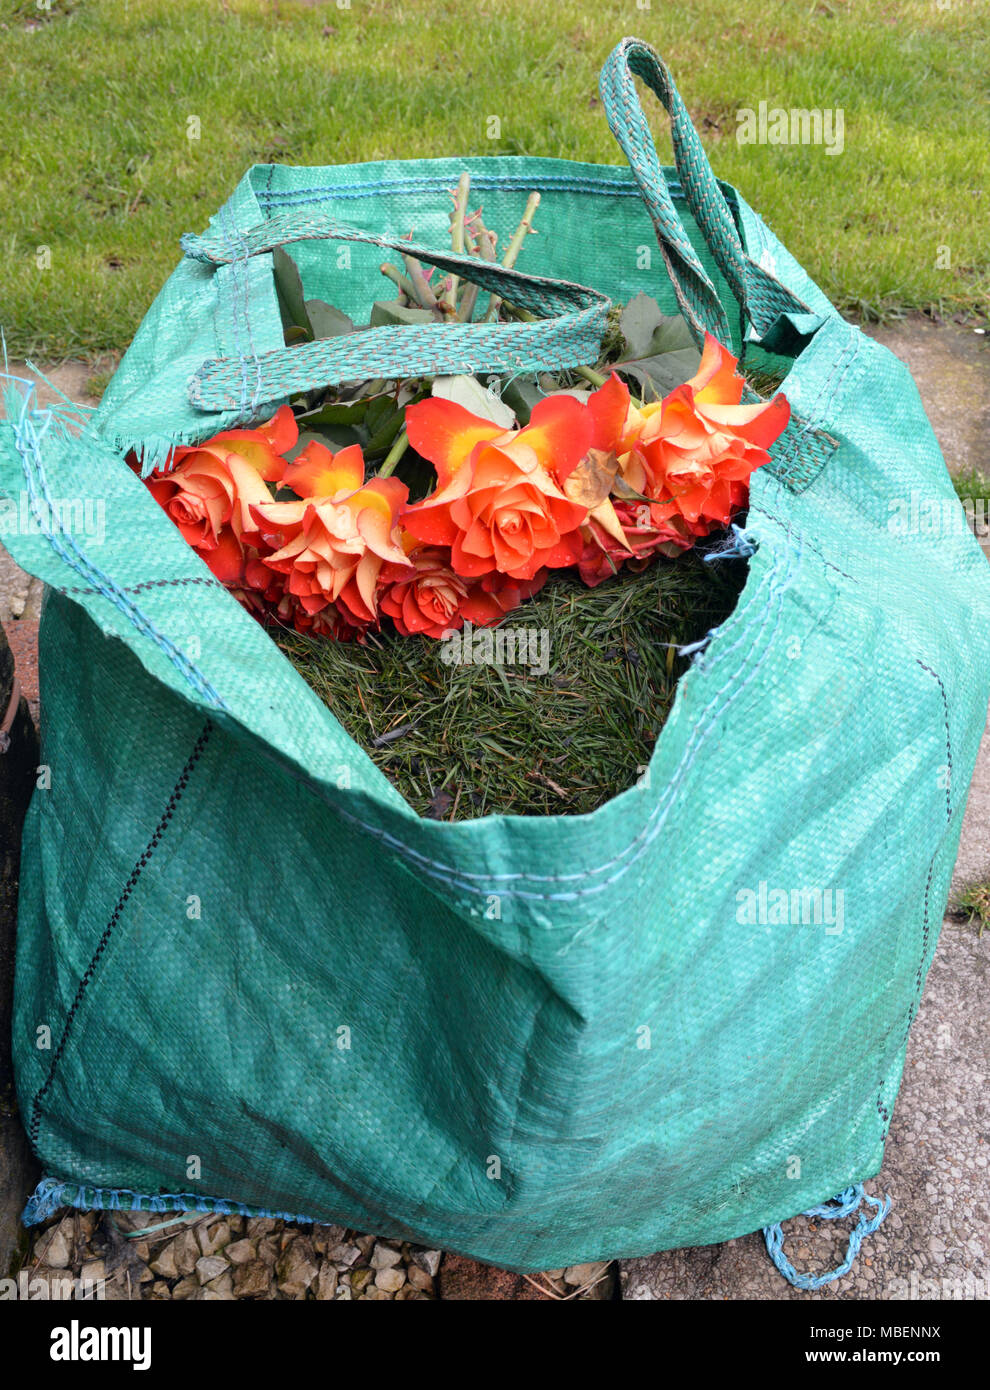 dead cut roses in biodegradable garden waste for disposal Stock Photo